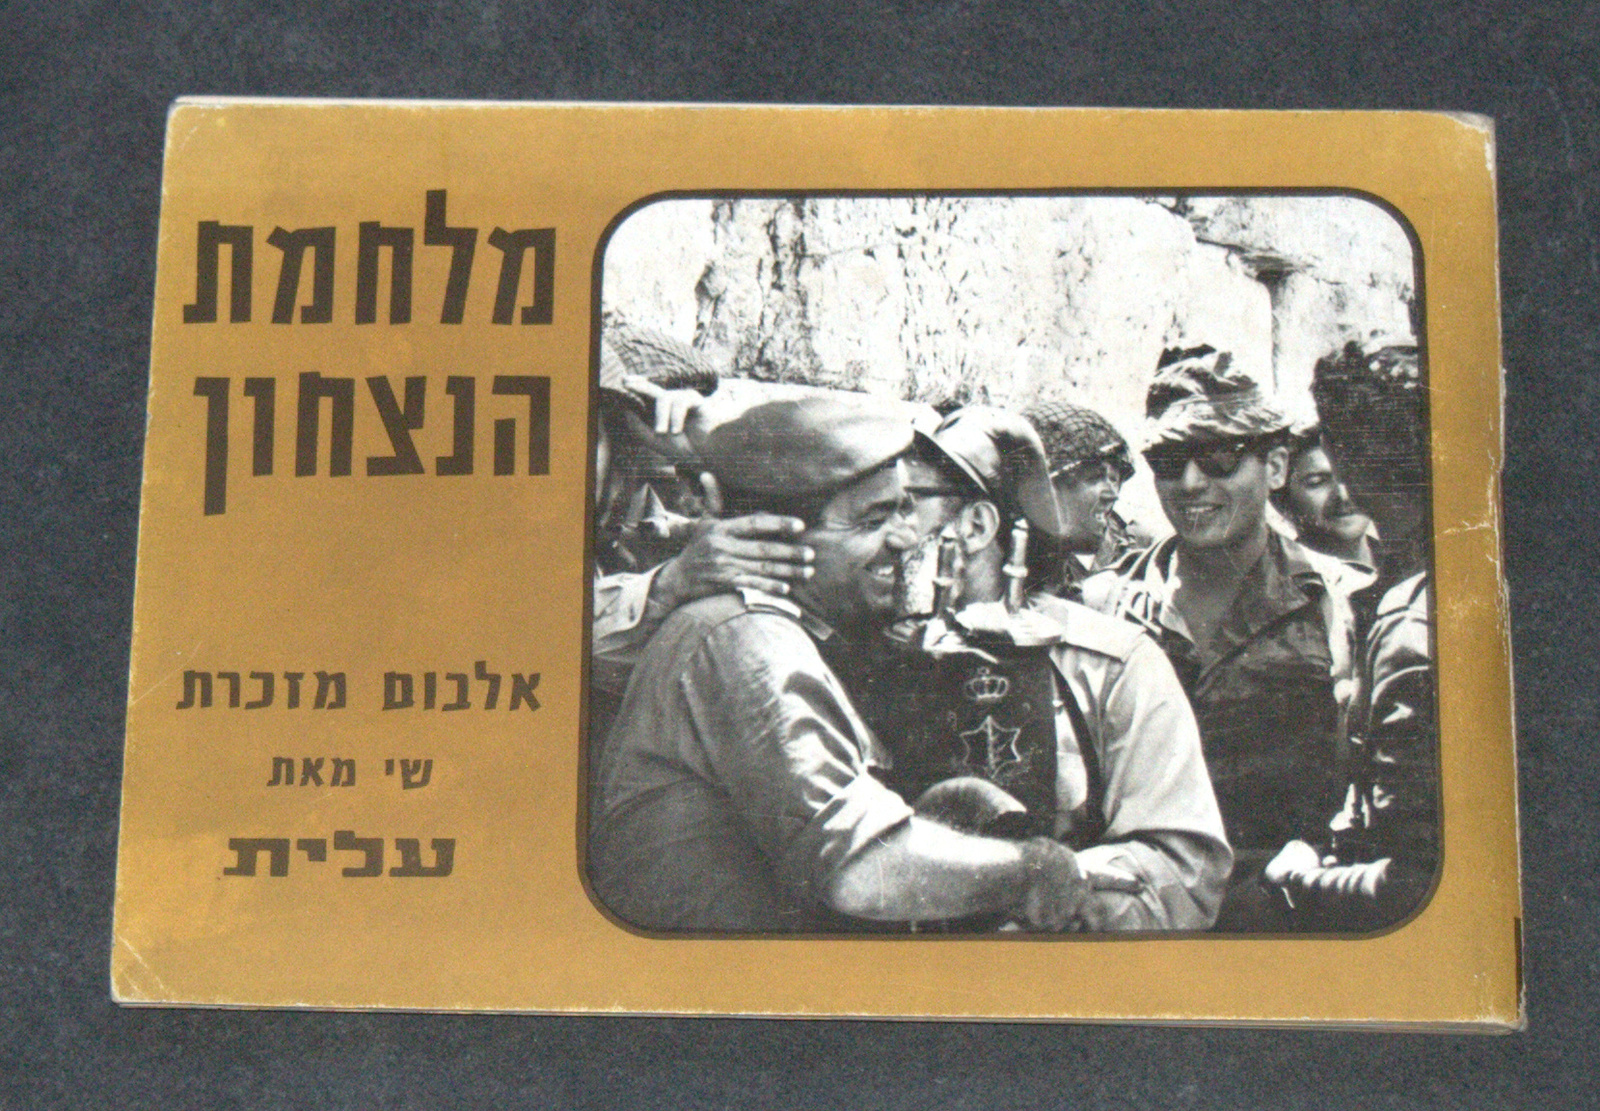 1967 6 Days War Souvenir Booklet Photo Album Hebrew Israel Vintage Elite